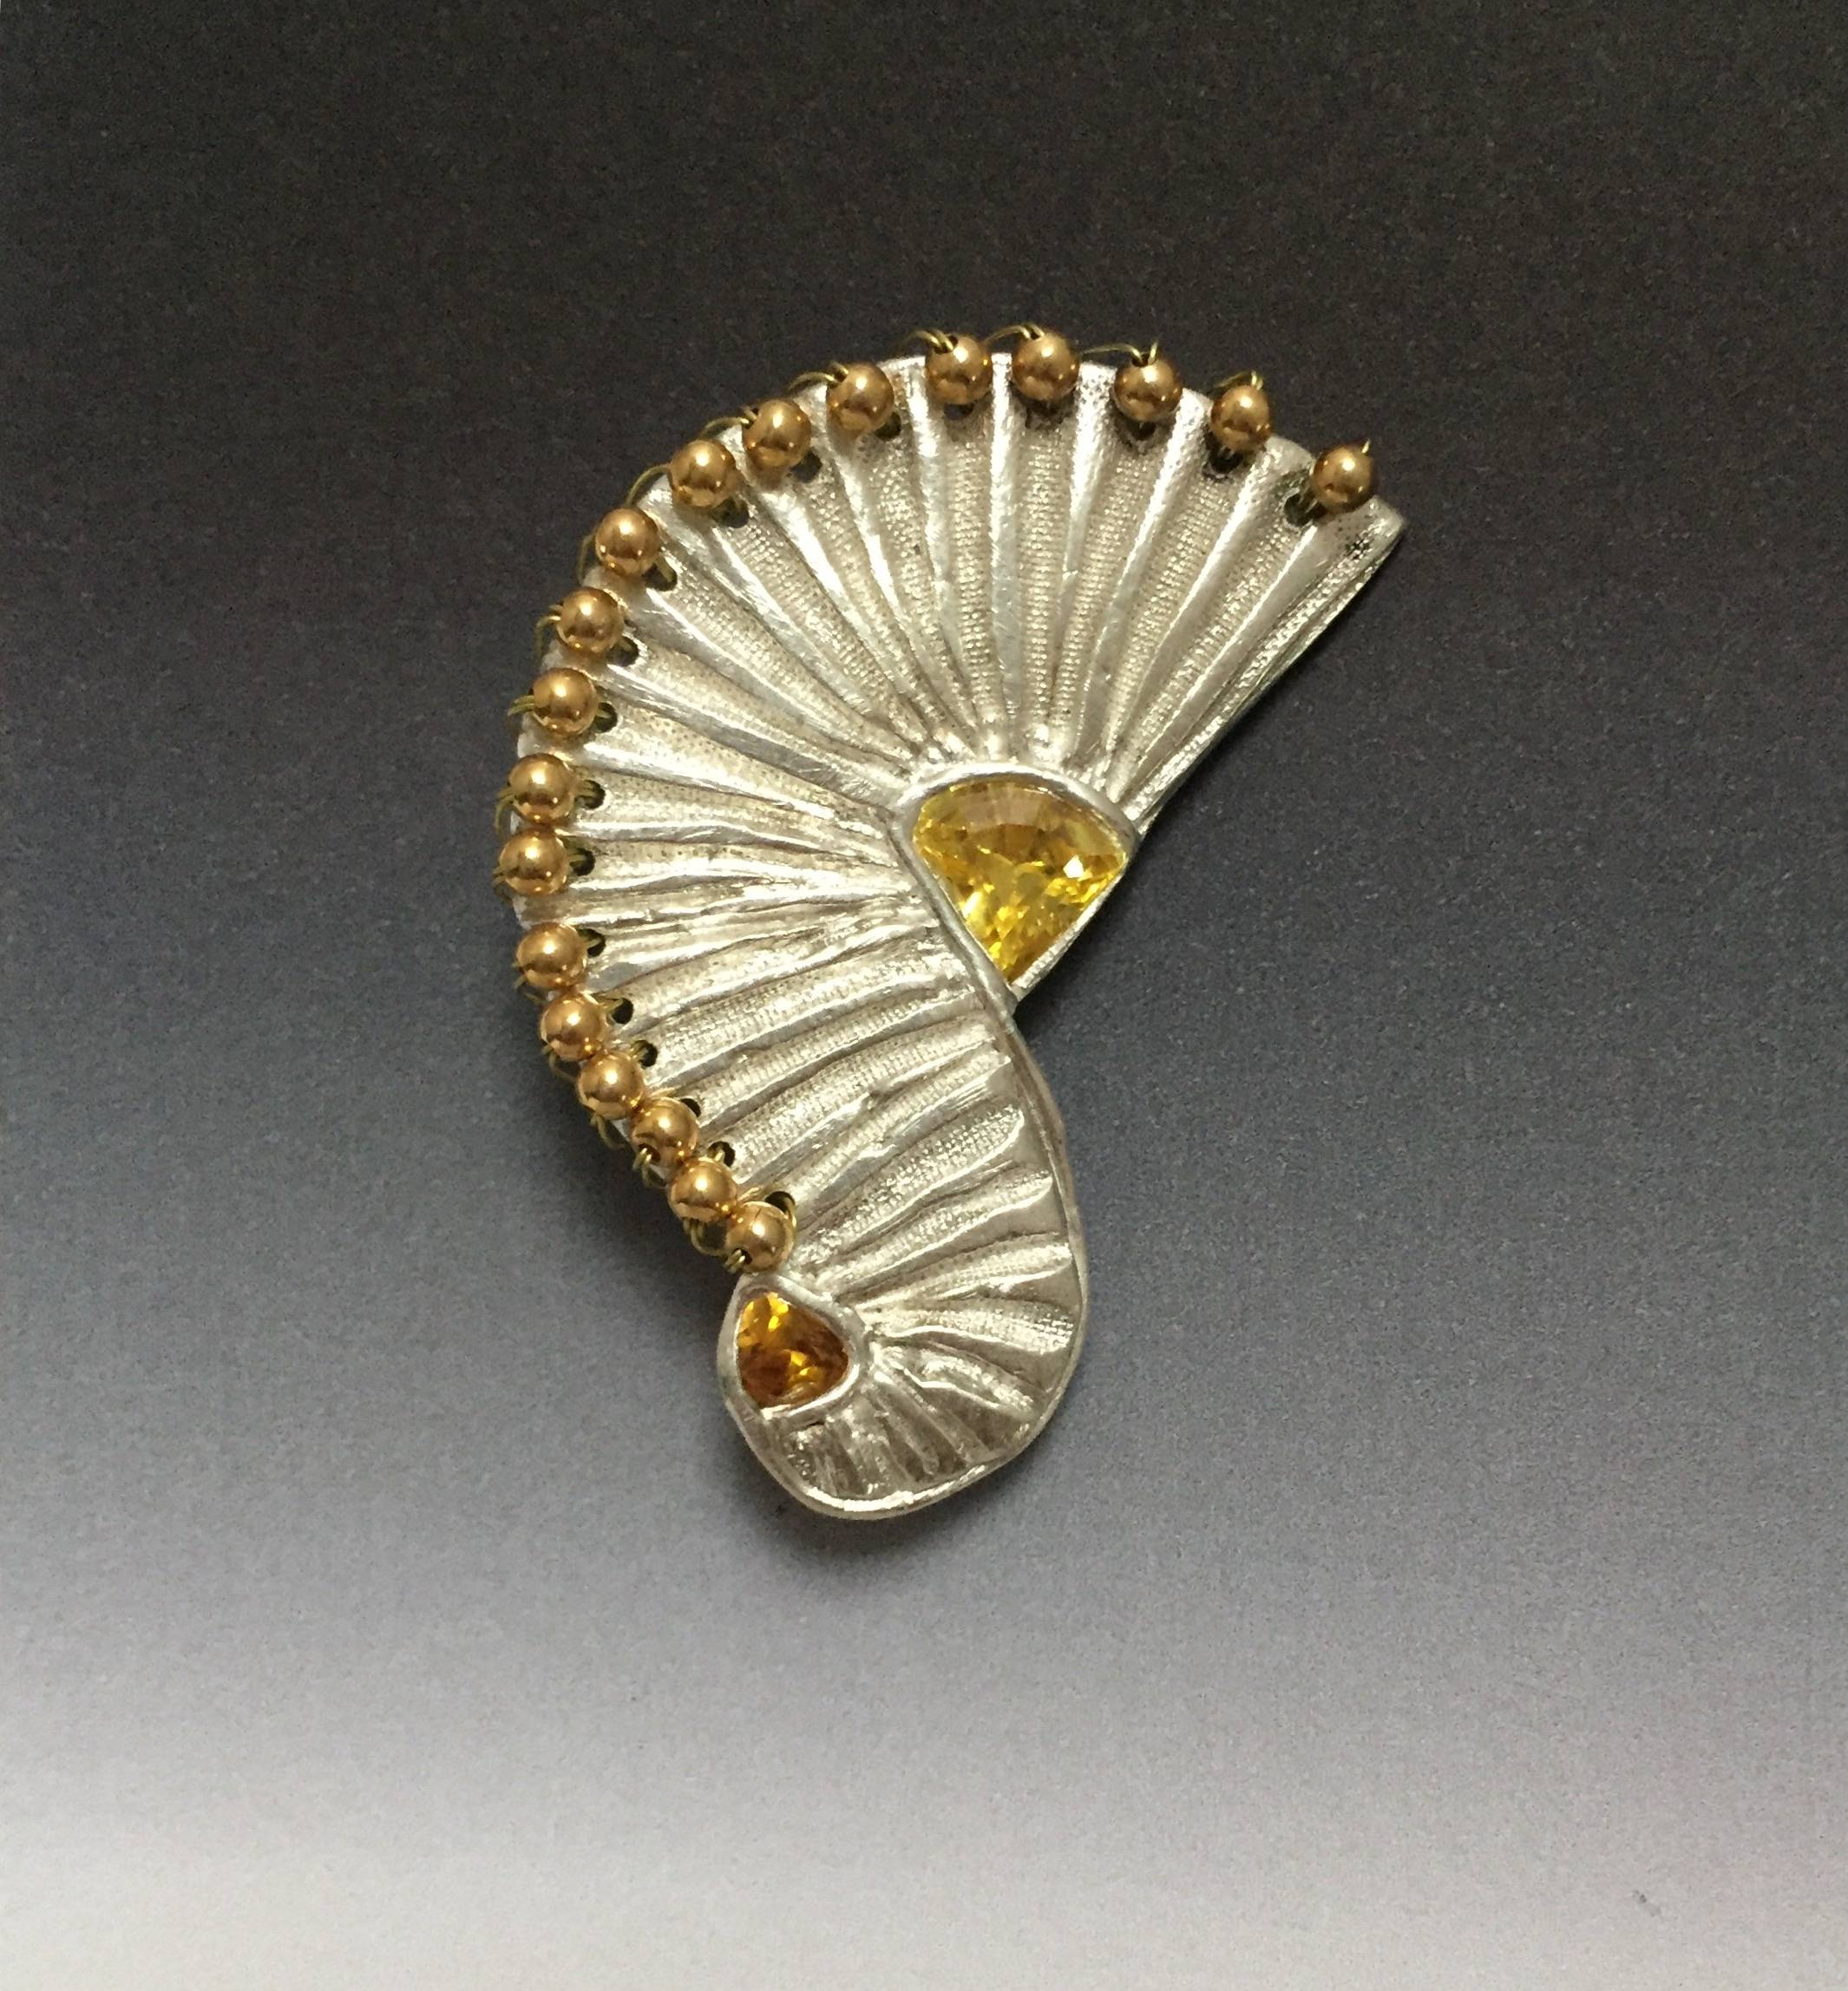 GOLD ON SILVER Brooch